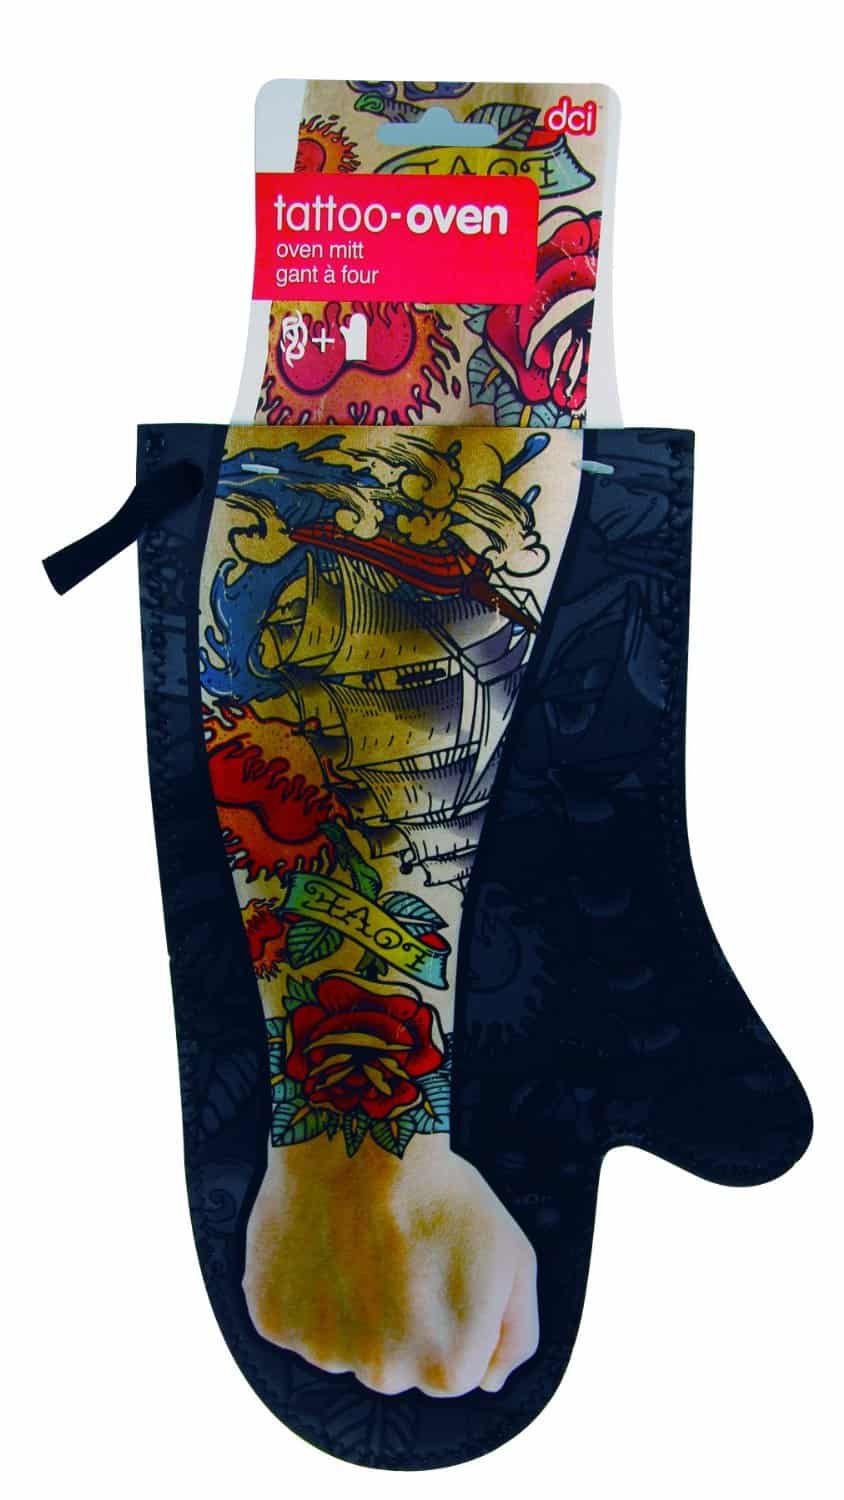 DCI Tattoo Oven Mitt Funny Gift Idea to Buy Him